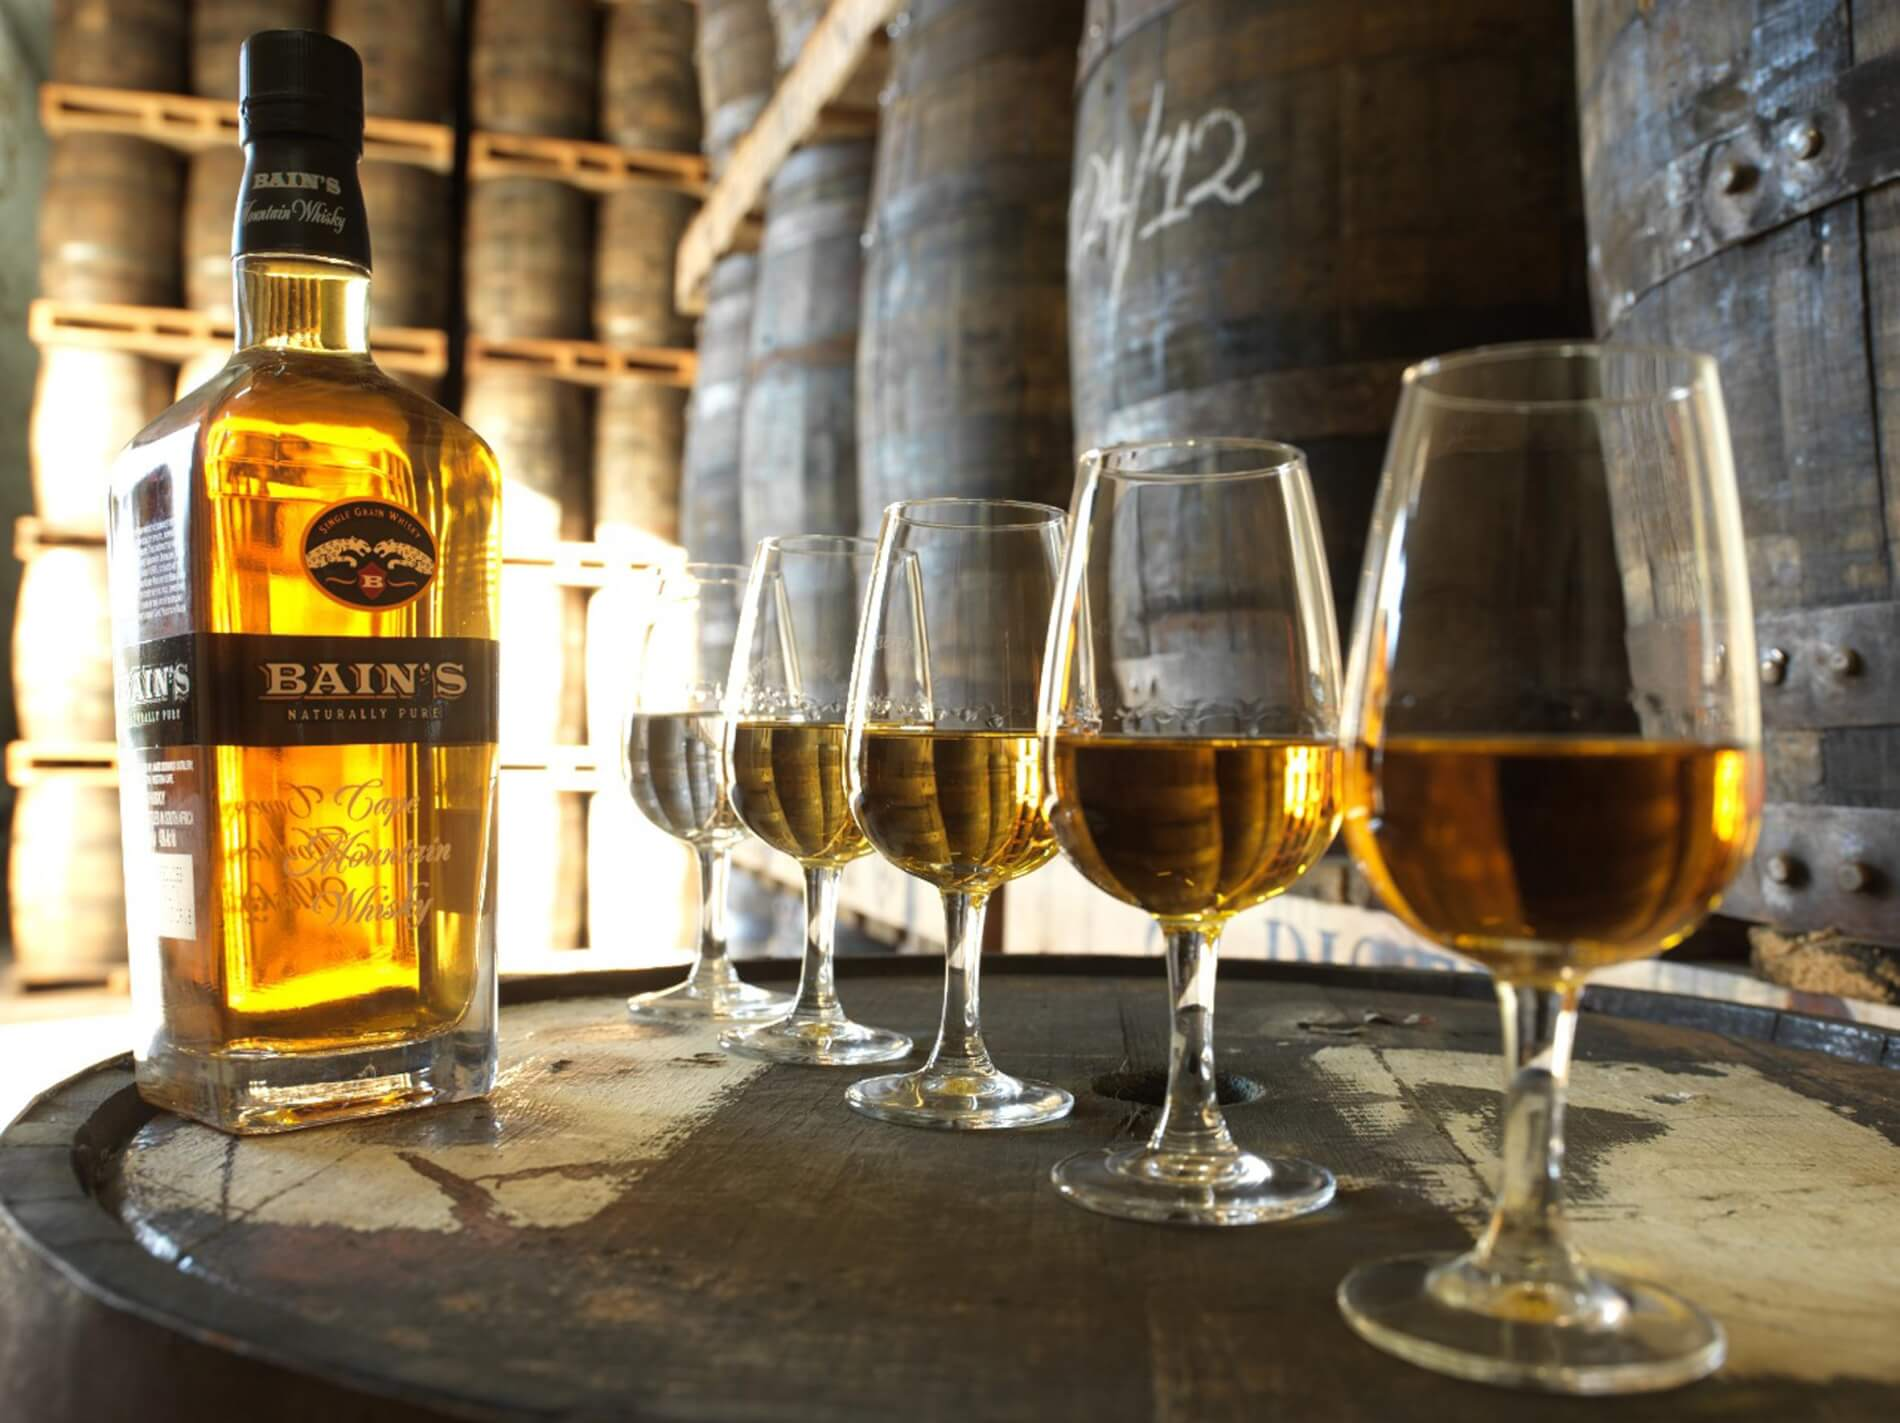 Bain's Cape Mountain Whisky 02.jpg (NXPowerLite)